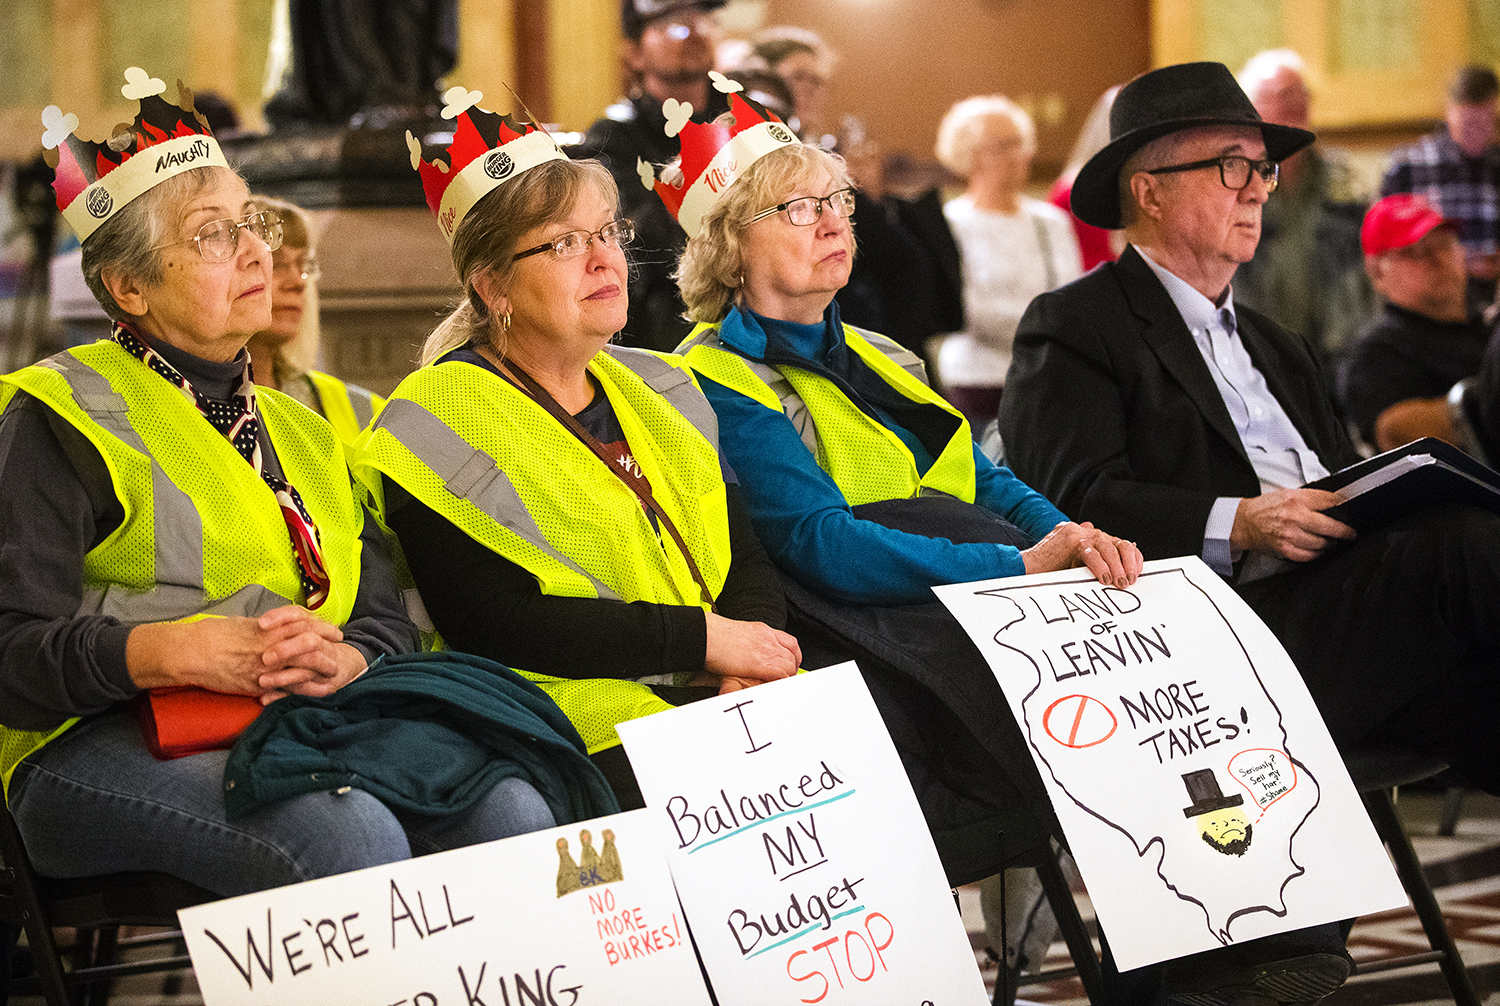 Lora Landrum, left, Joni Sorce and Margie Kreier listen to Illinois State Rep. Allen Skillicorn, (R-East Dundee), during an event in the Capitol rotunda Monday, Jan. 7, 2019. Skillicorn and other speakers voiced their opposition to the passage of any new taxes by a lame duck legislature. [Ted Schurter/The State Journal-Register]